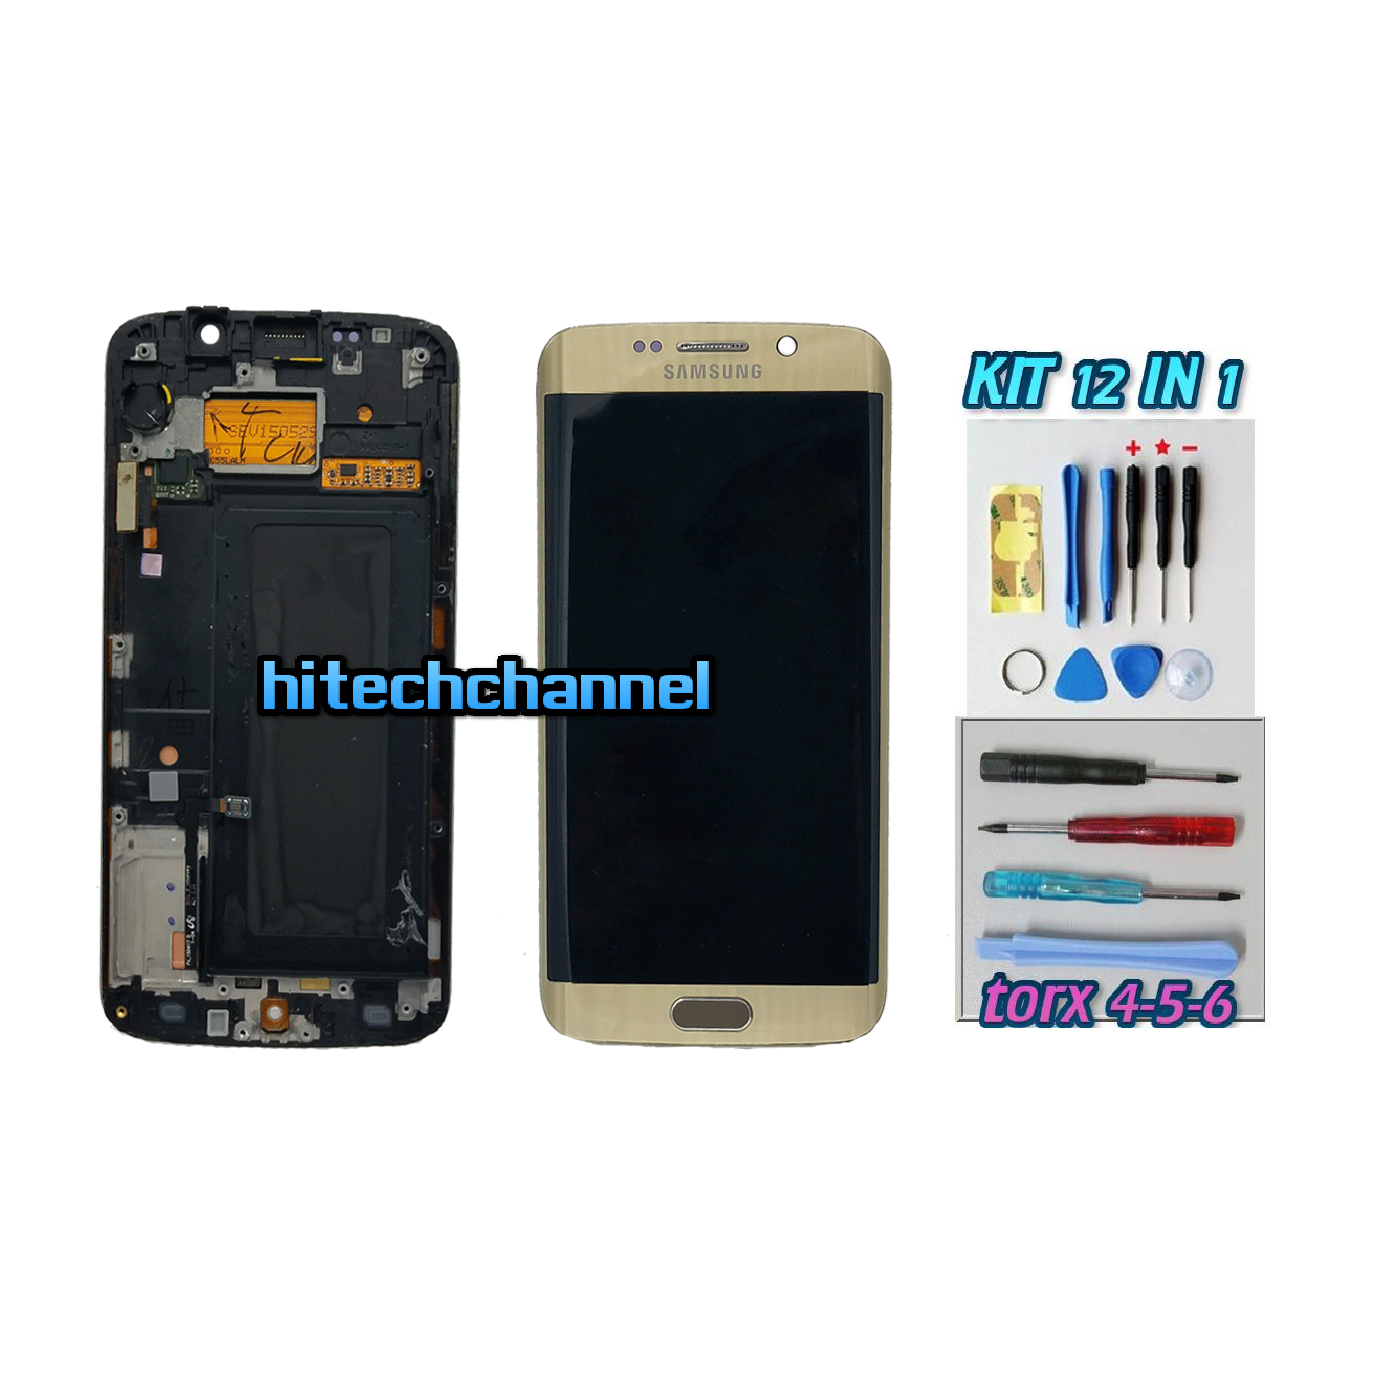 DISPLAY ORIGINALE SERVICE PACK LCD TOUCH SAMSUNG GALAXY S6 EDGE G925 ORO GOLD GH97-17262A con kit e biadesivo